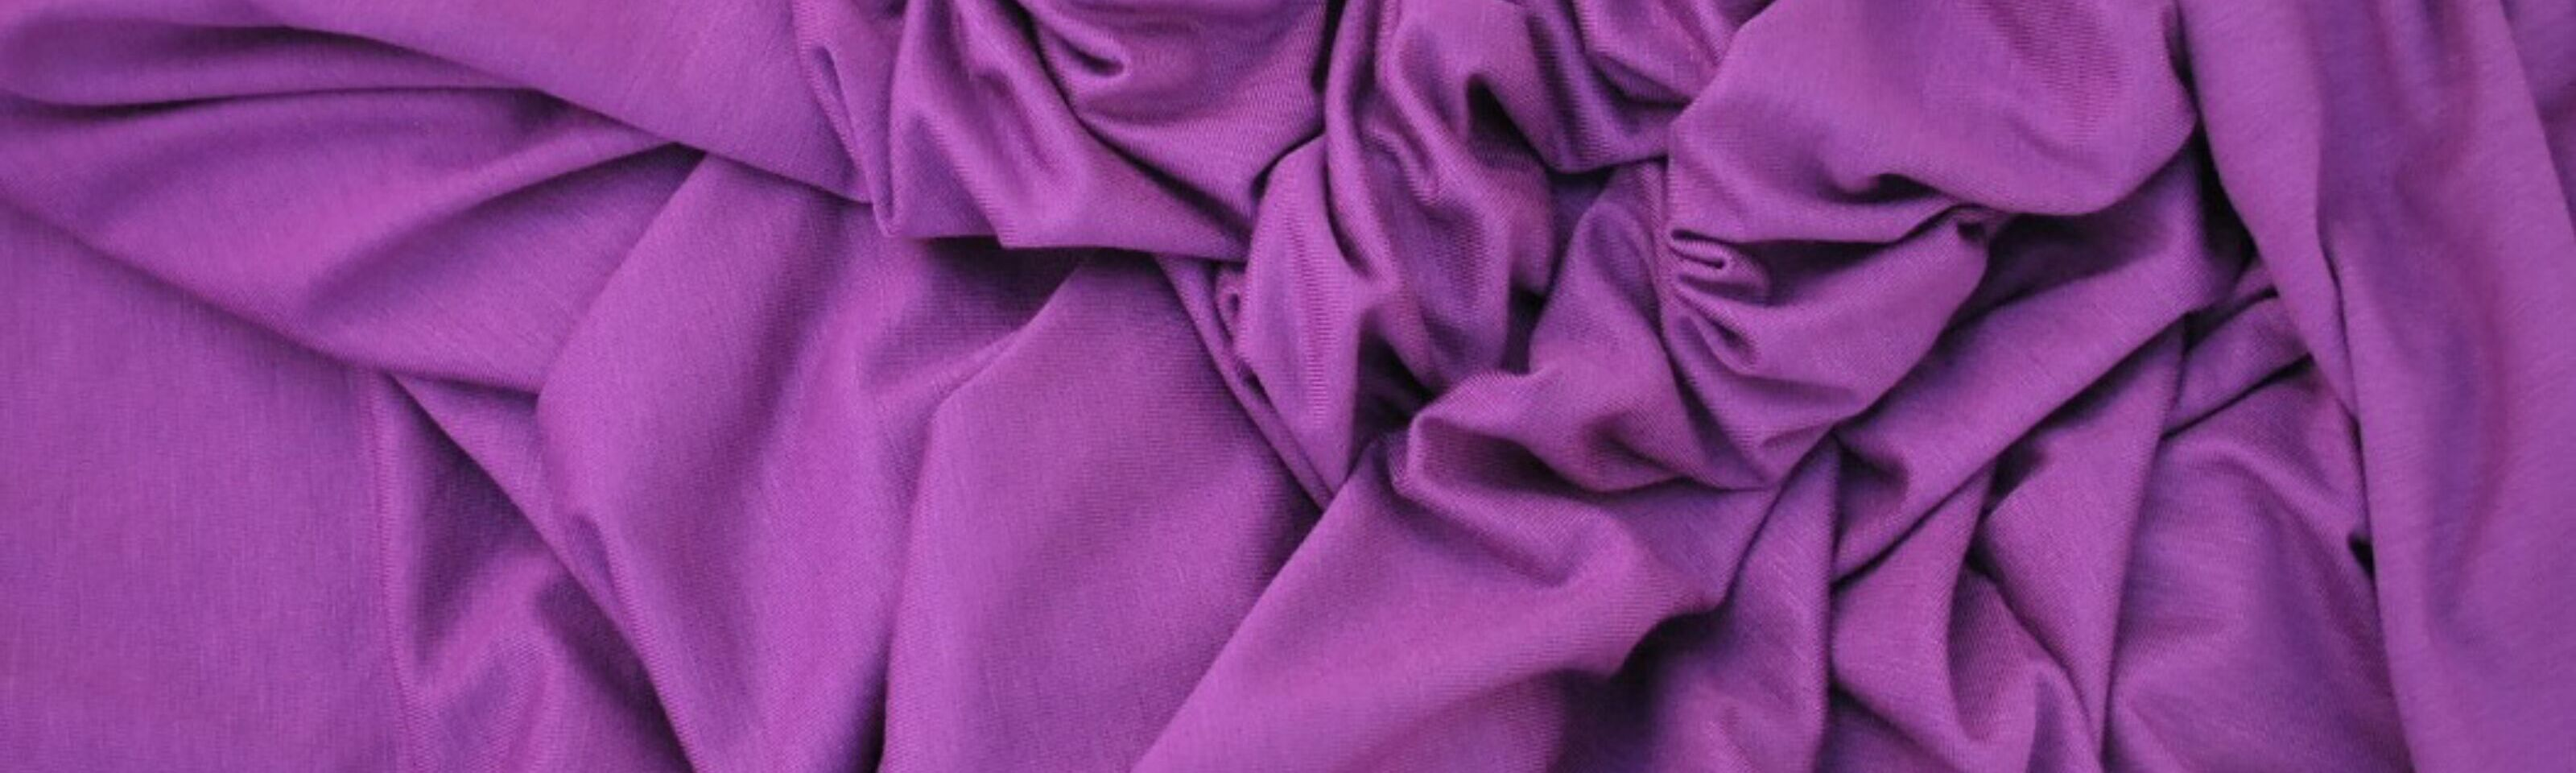 Togetherness_purply lilac viscose jersey_w